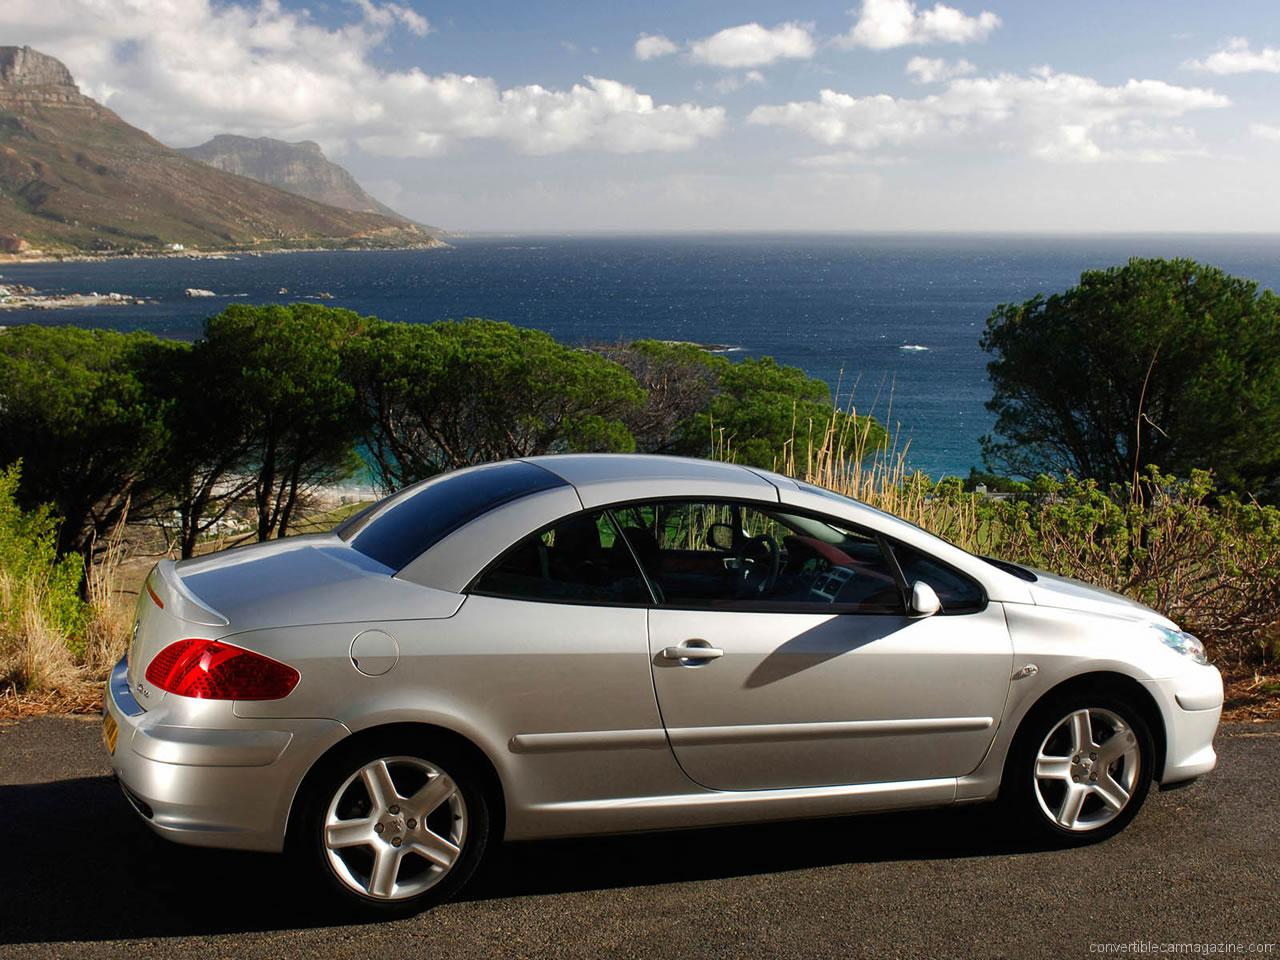 Peugeot 307 Cc Buying Guide